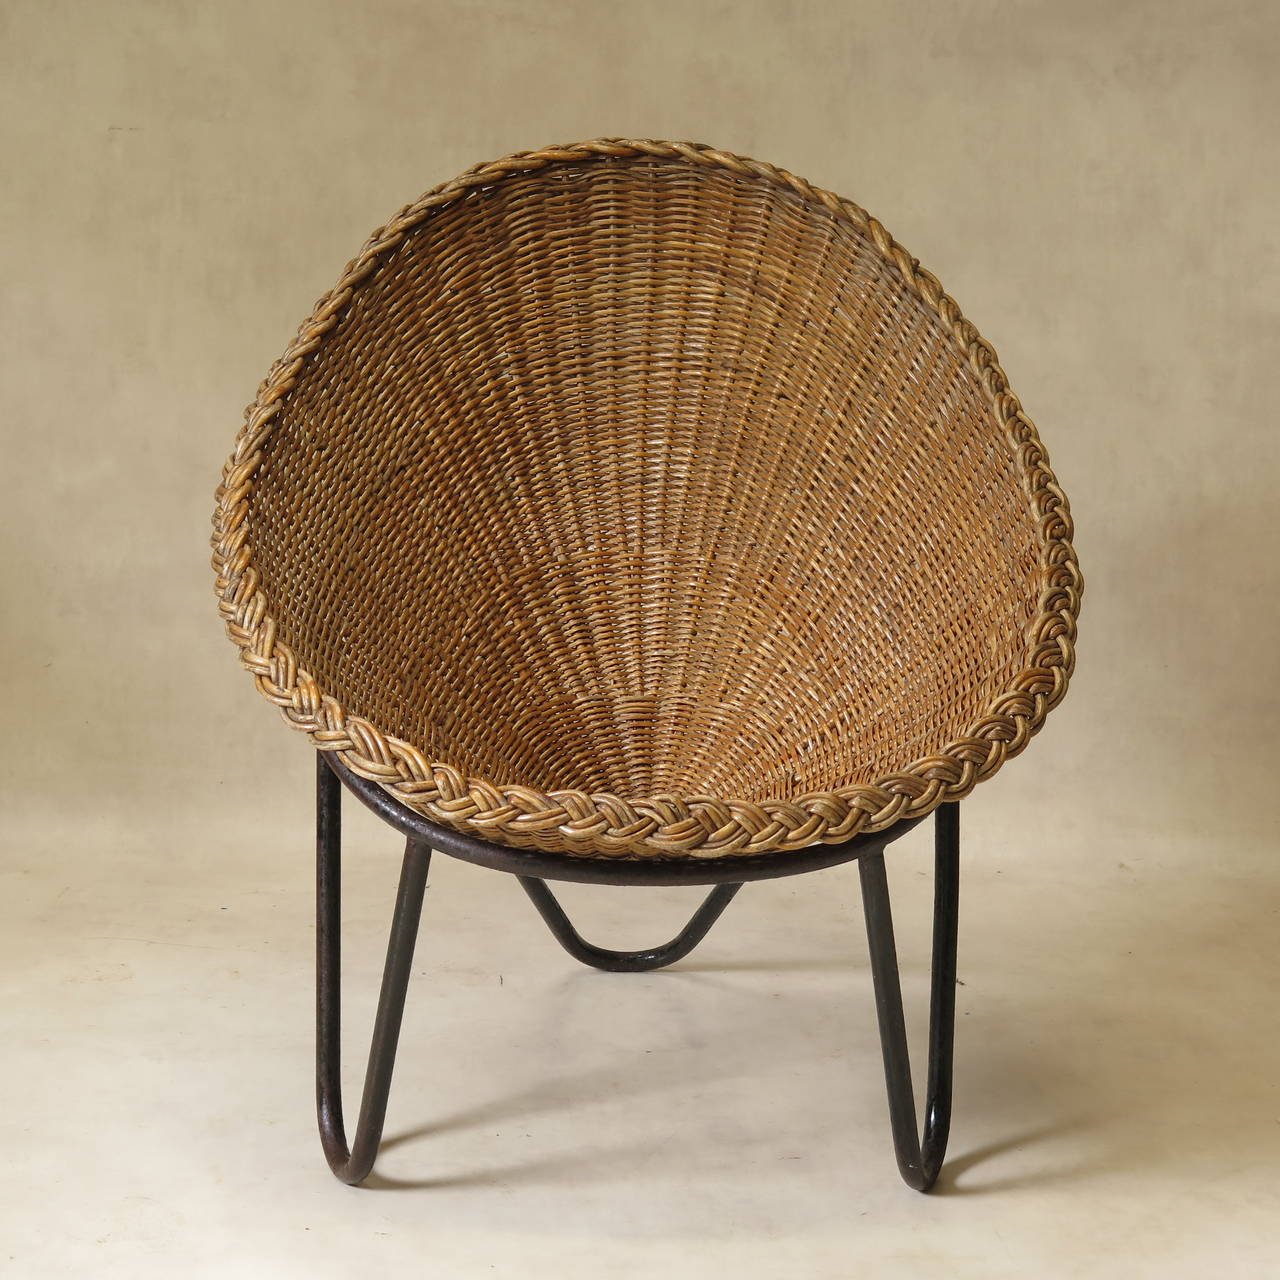 Egg Shaped Wicker Chair Wicker And Iron Lounge Chair France 1950s For Sale At